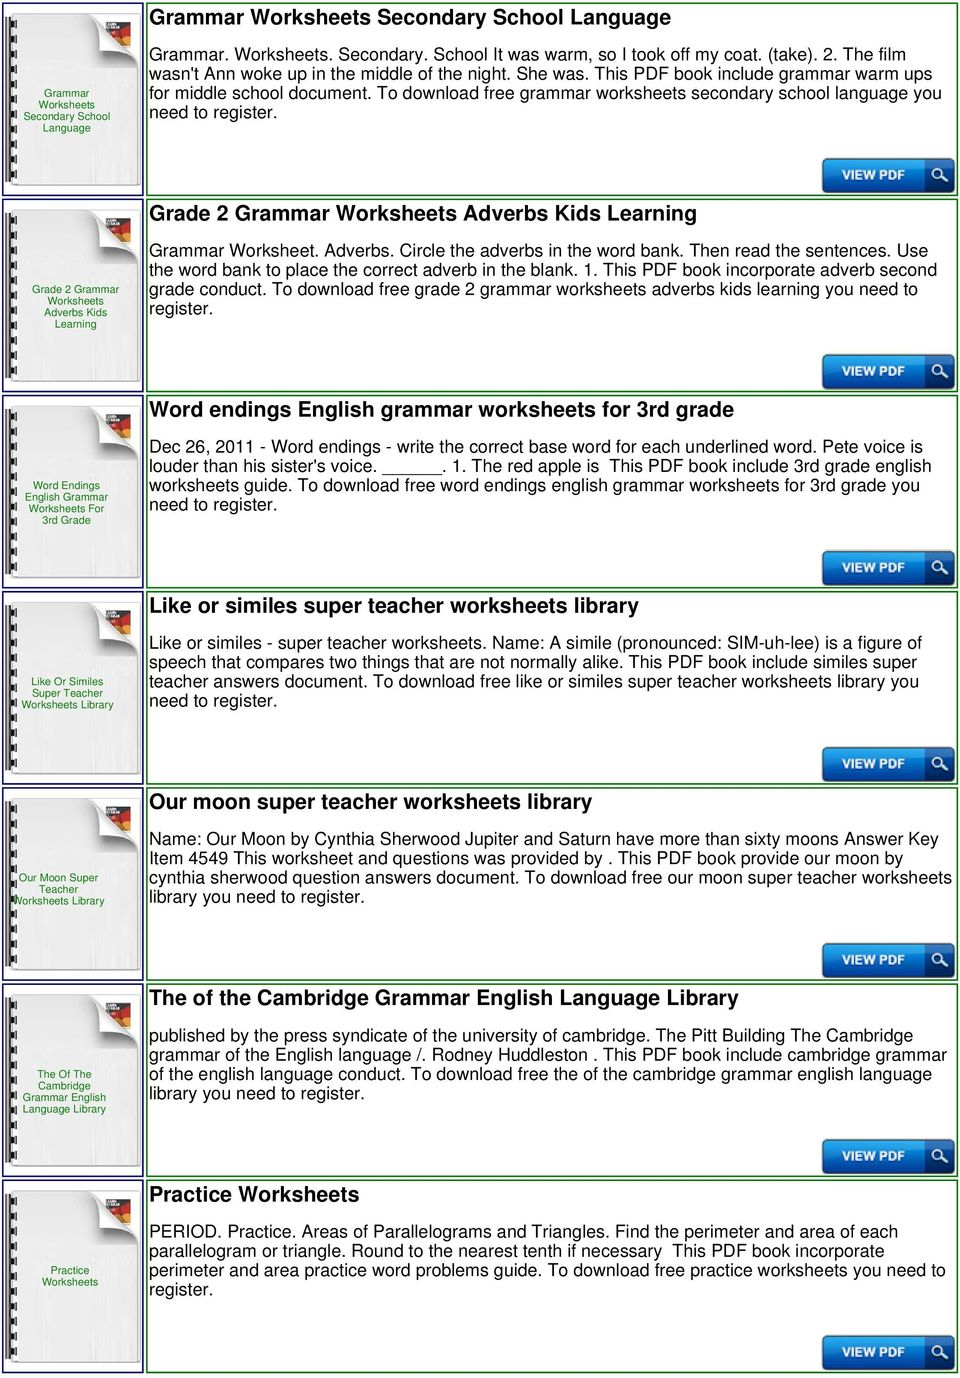 Esl Library Grammar Practice Worksheets Pdf